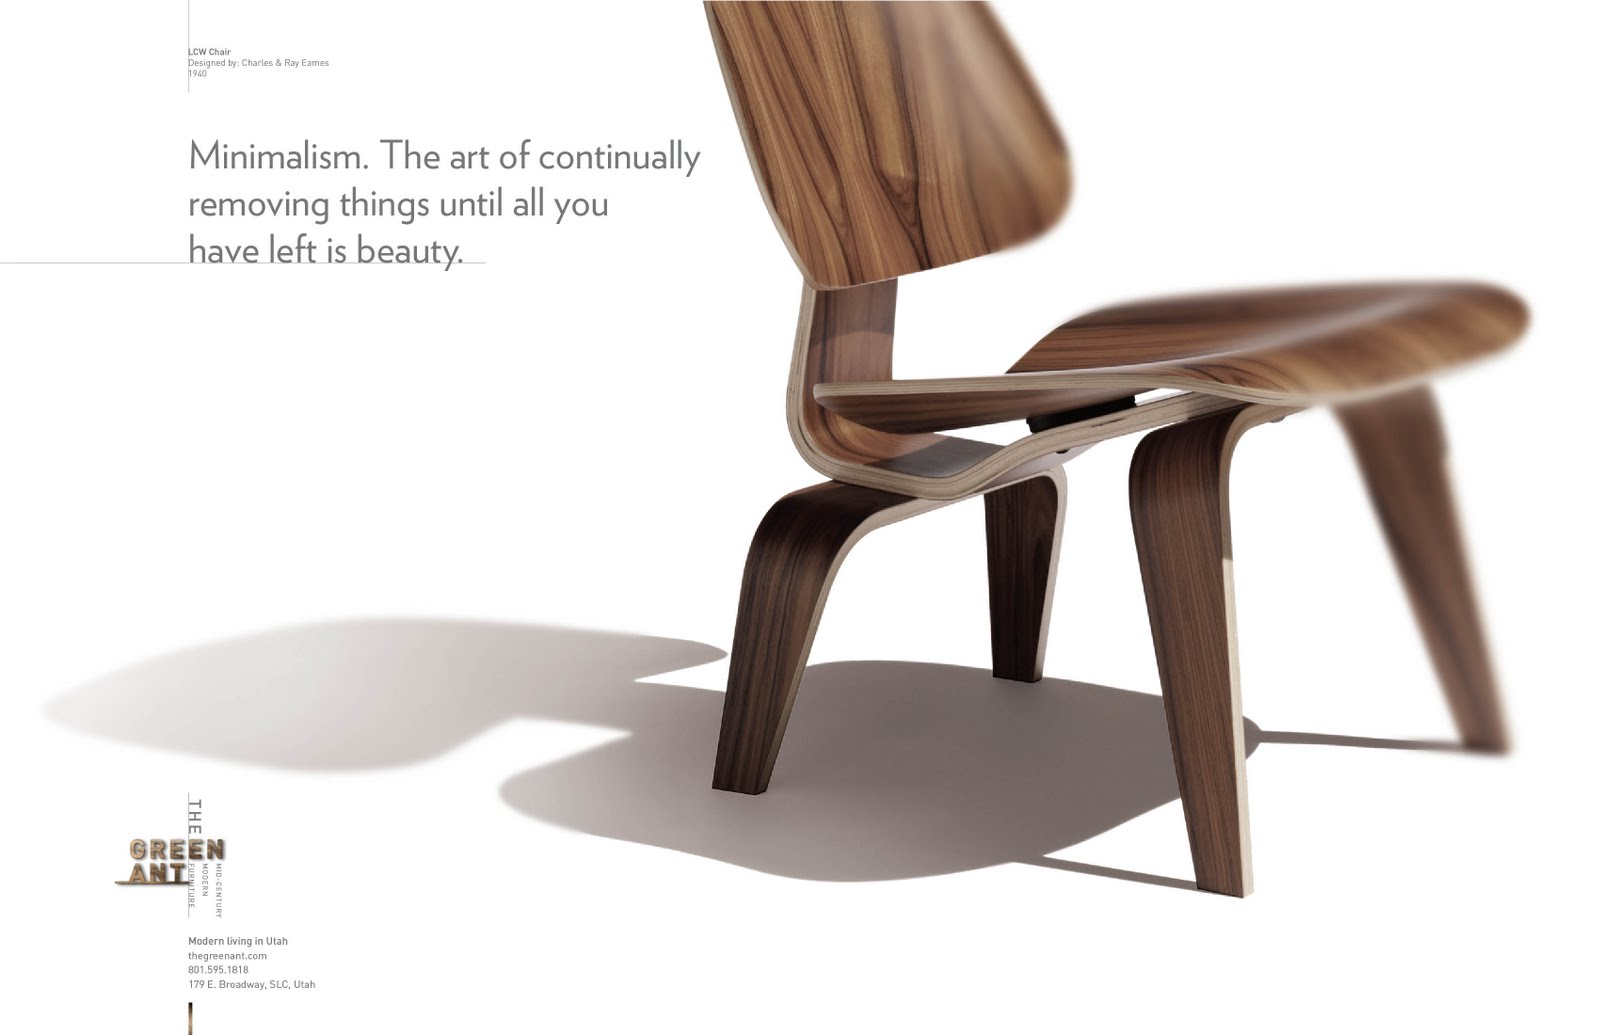 Furniture advertising slogans - Campaign For The Green Ant